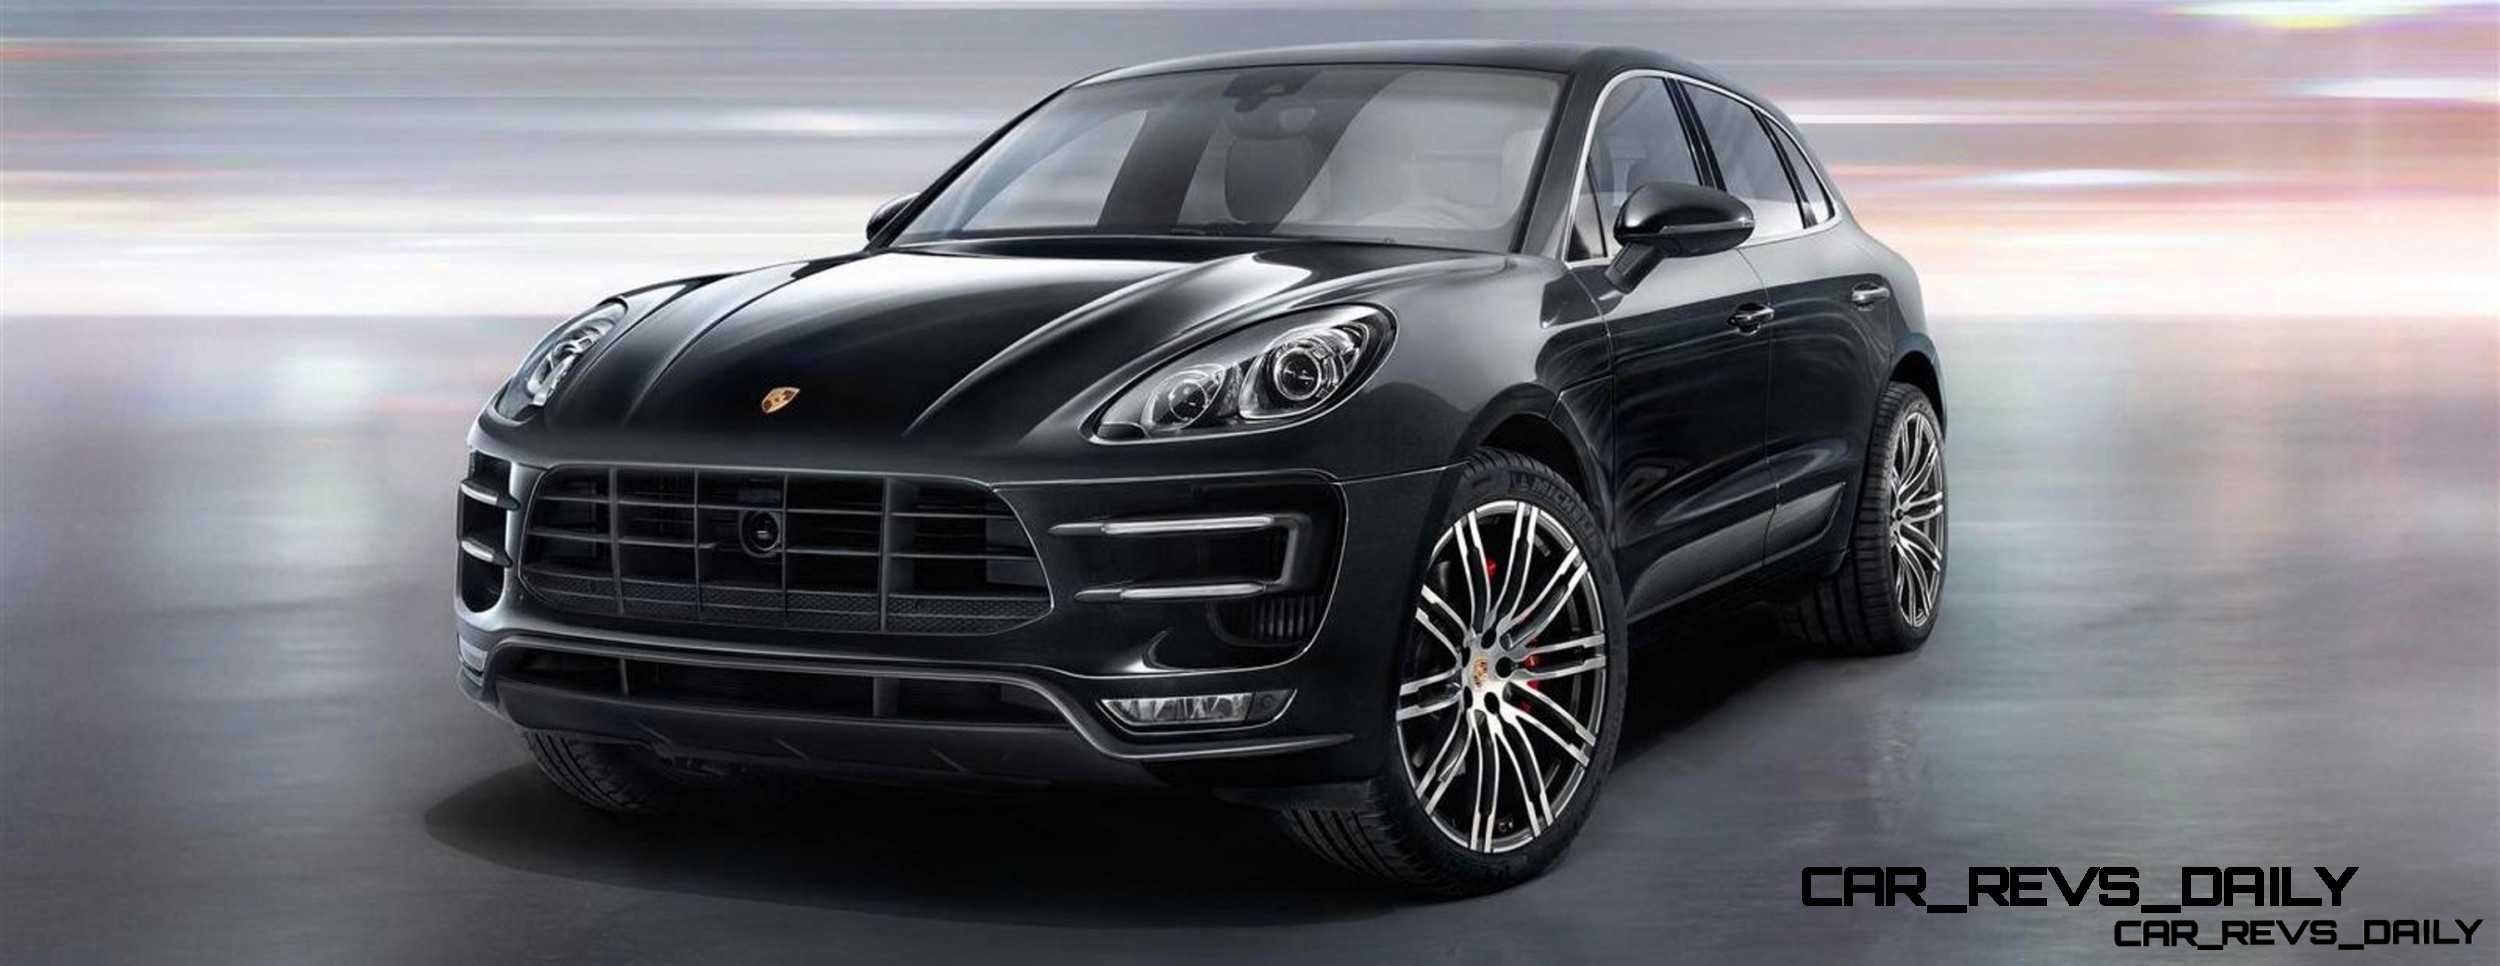 2015 Porsche Macan - Latest Images - CarRevsDaily.com 84